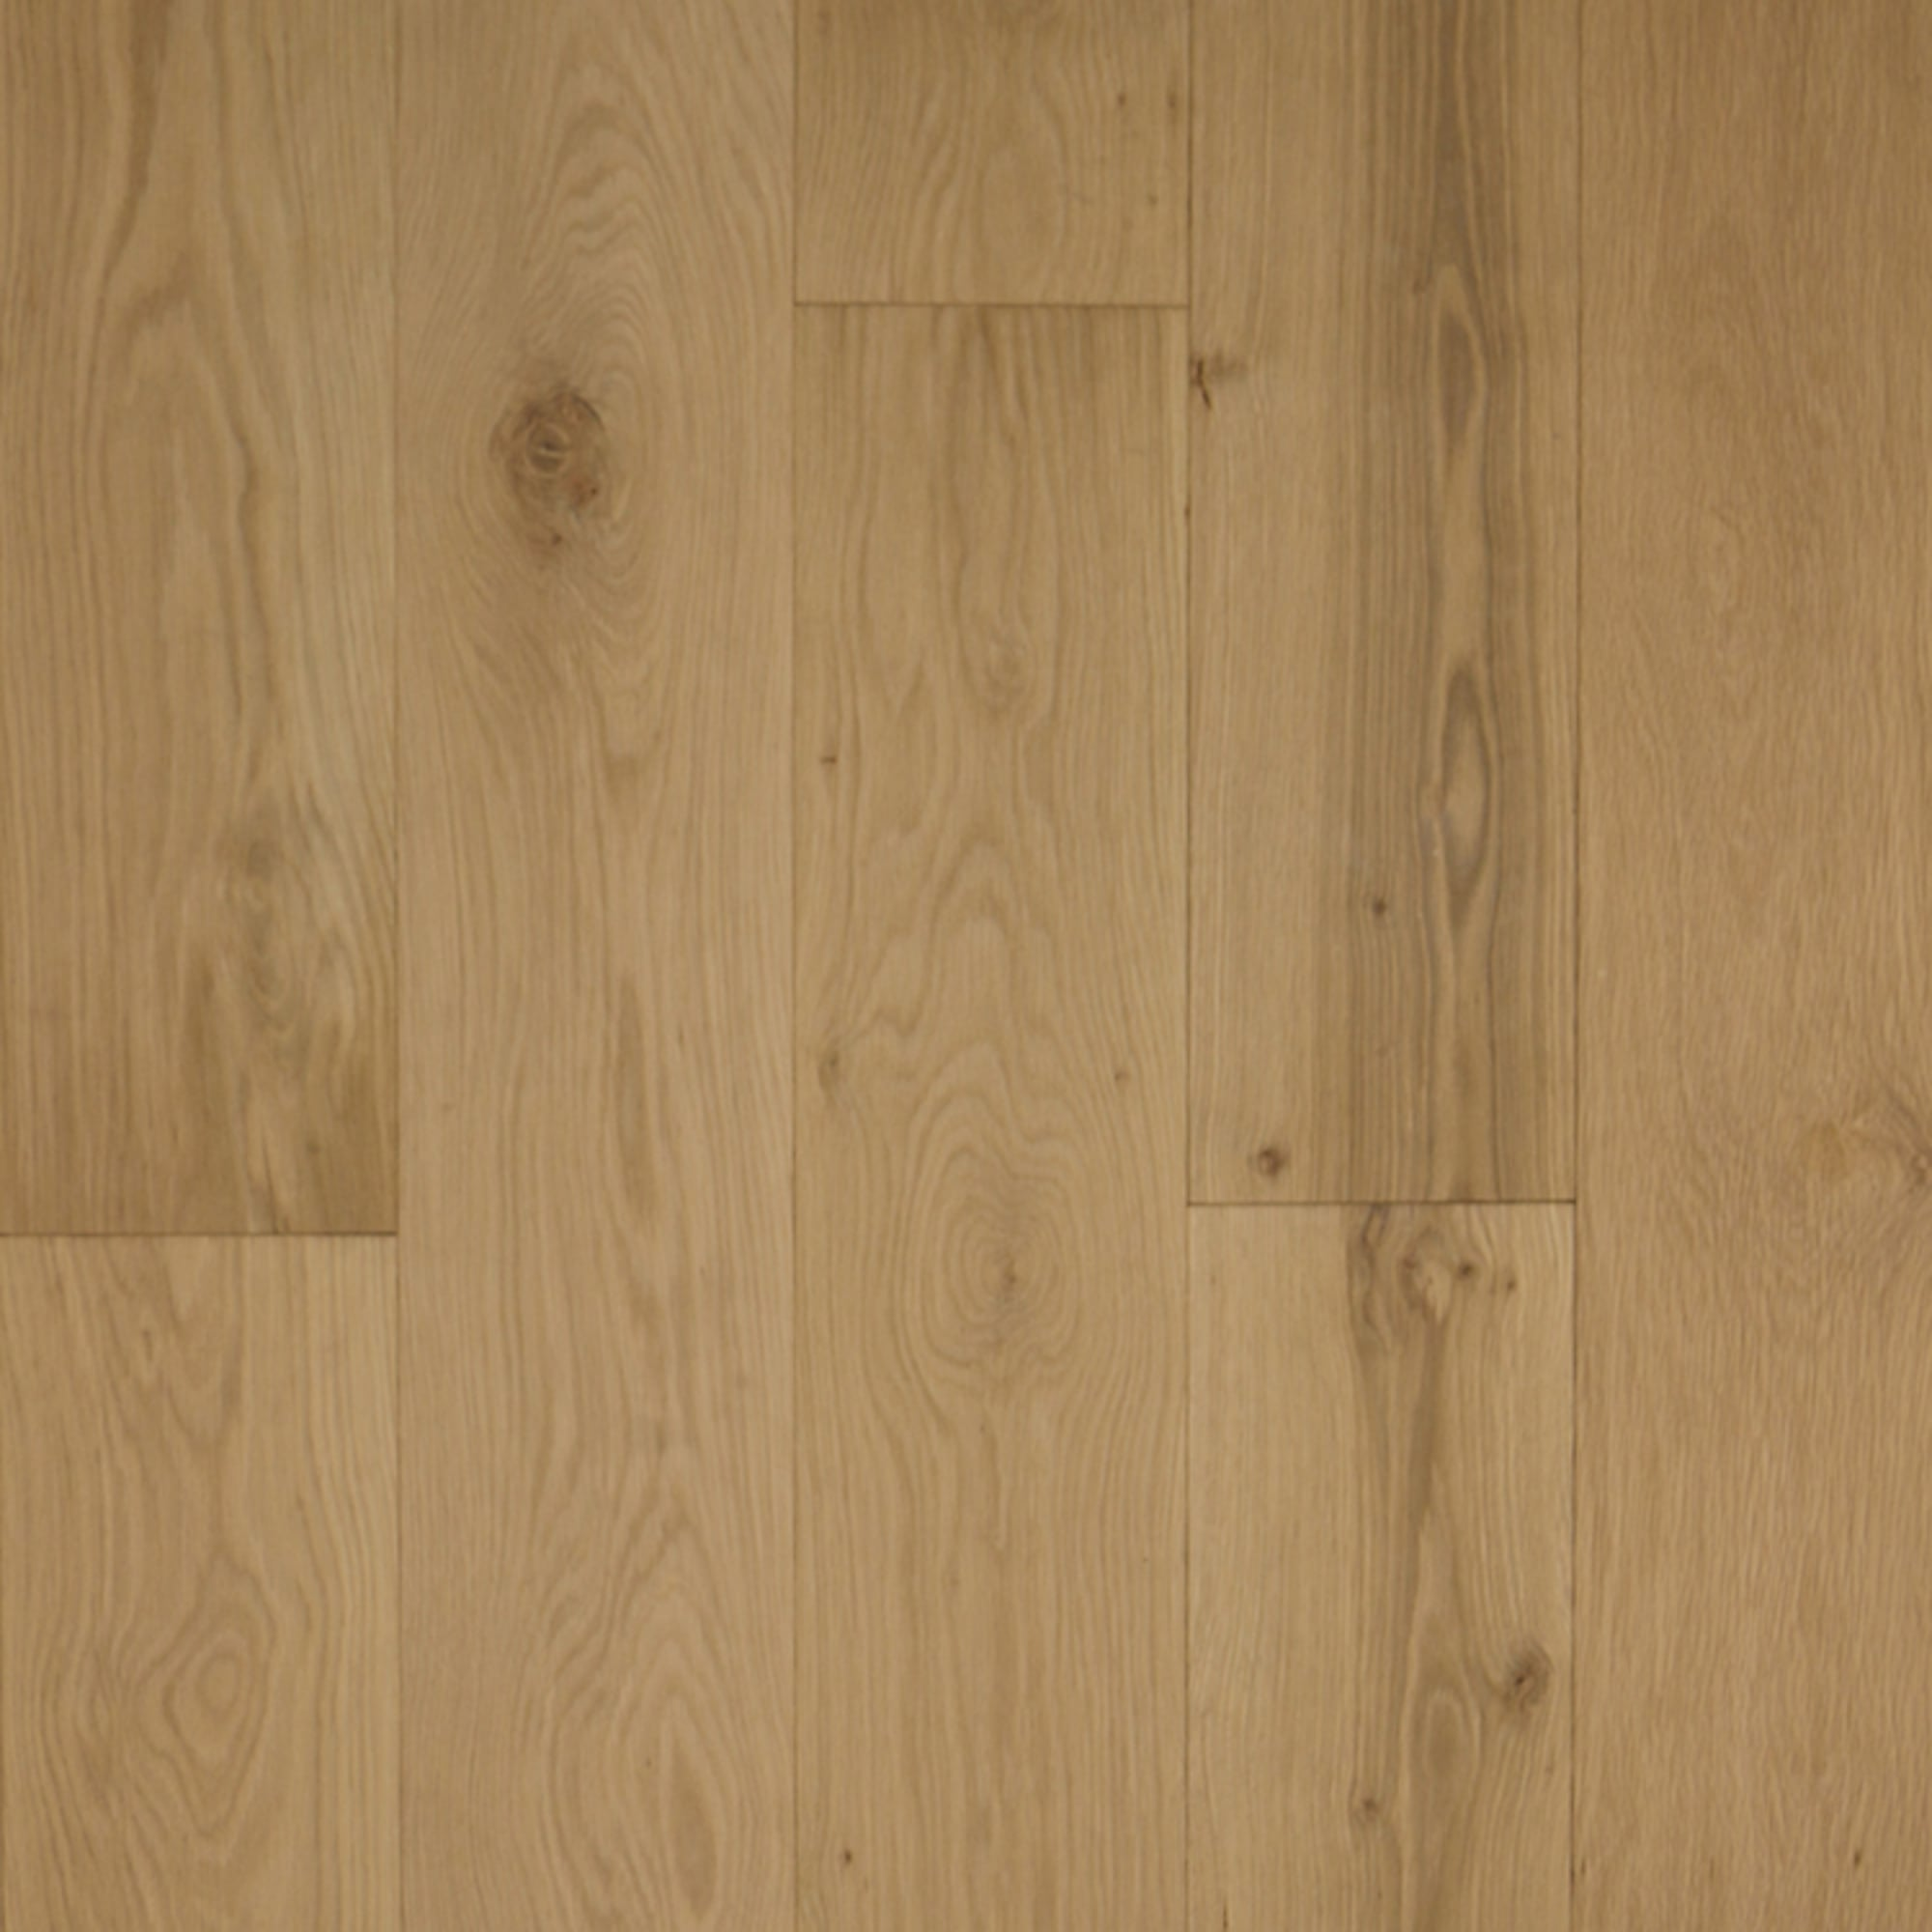 Wood flooring 14x189mm invisible oil hppc engineered oak for Engineered woods